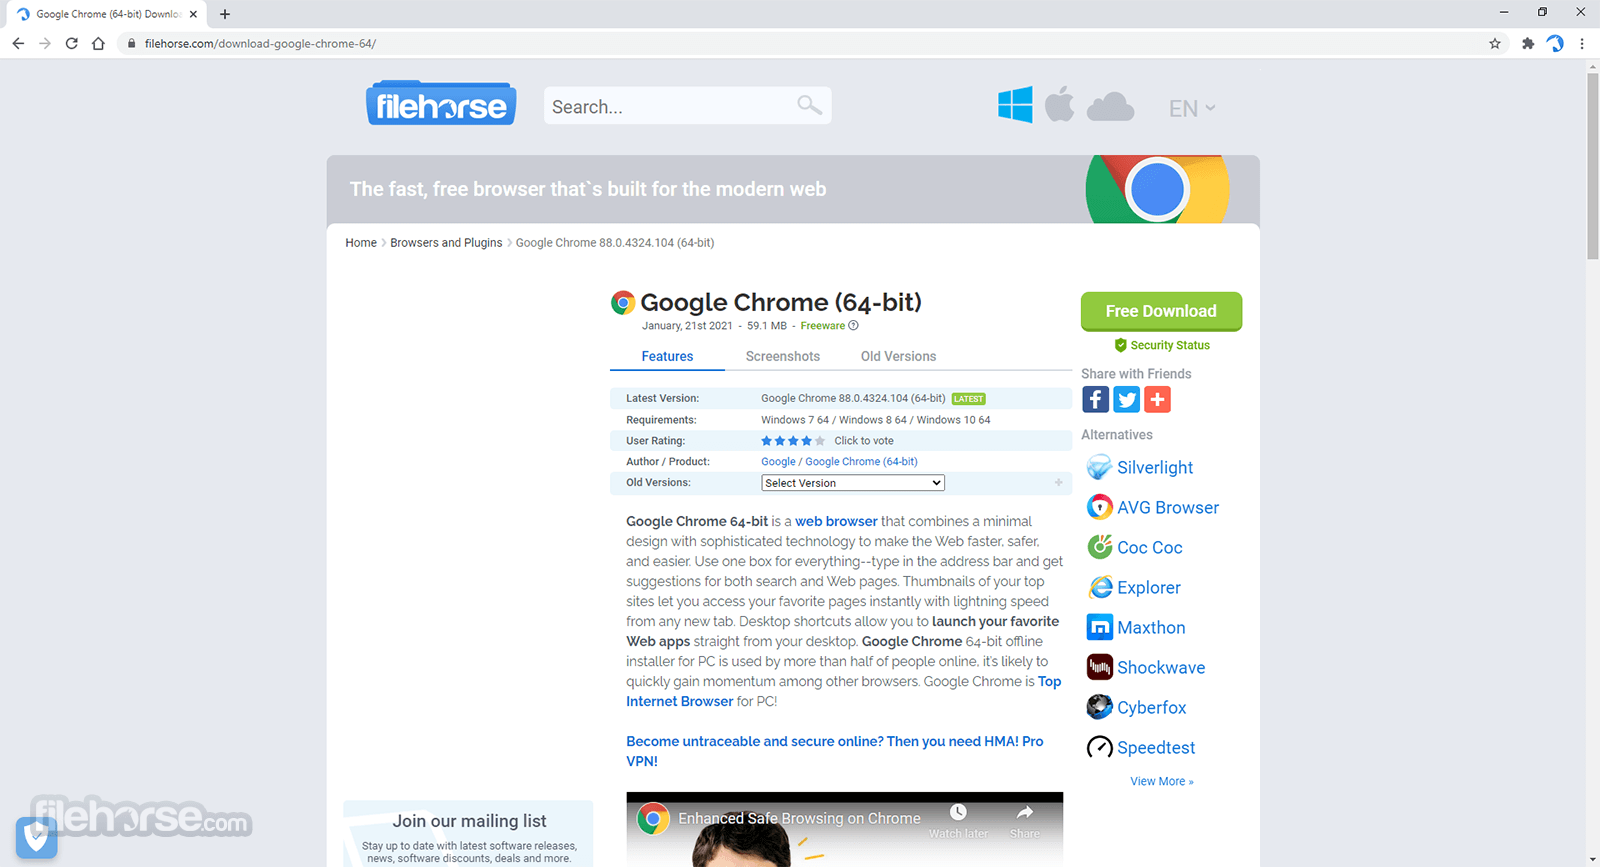 google chrome 57.0